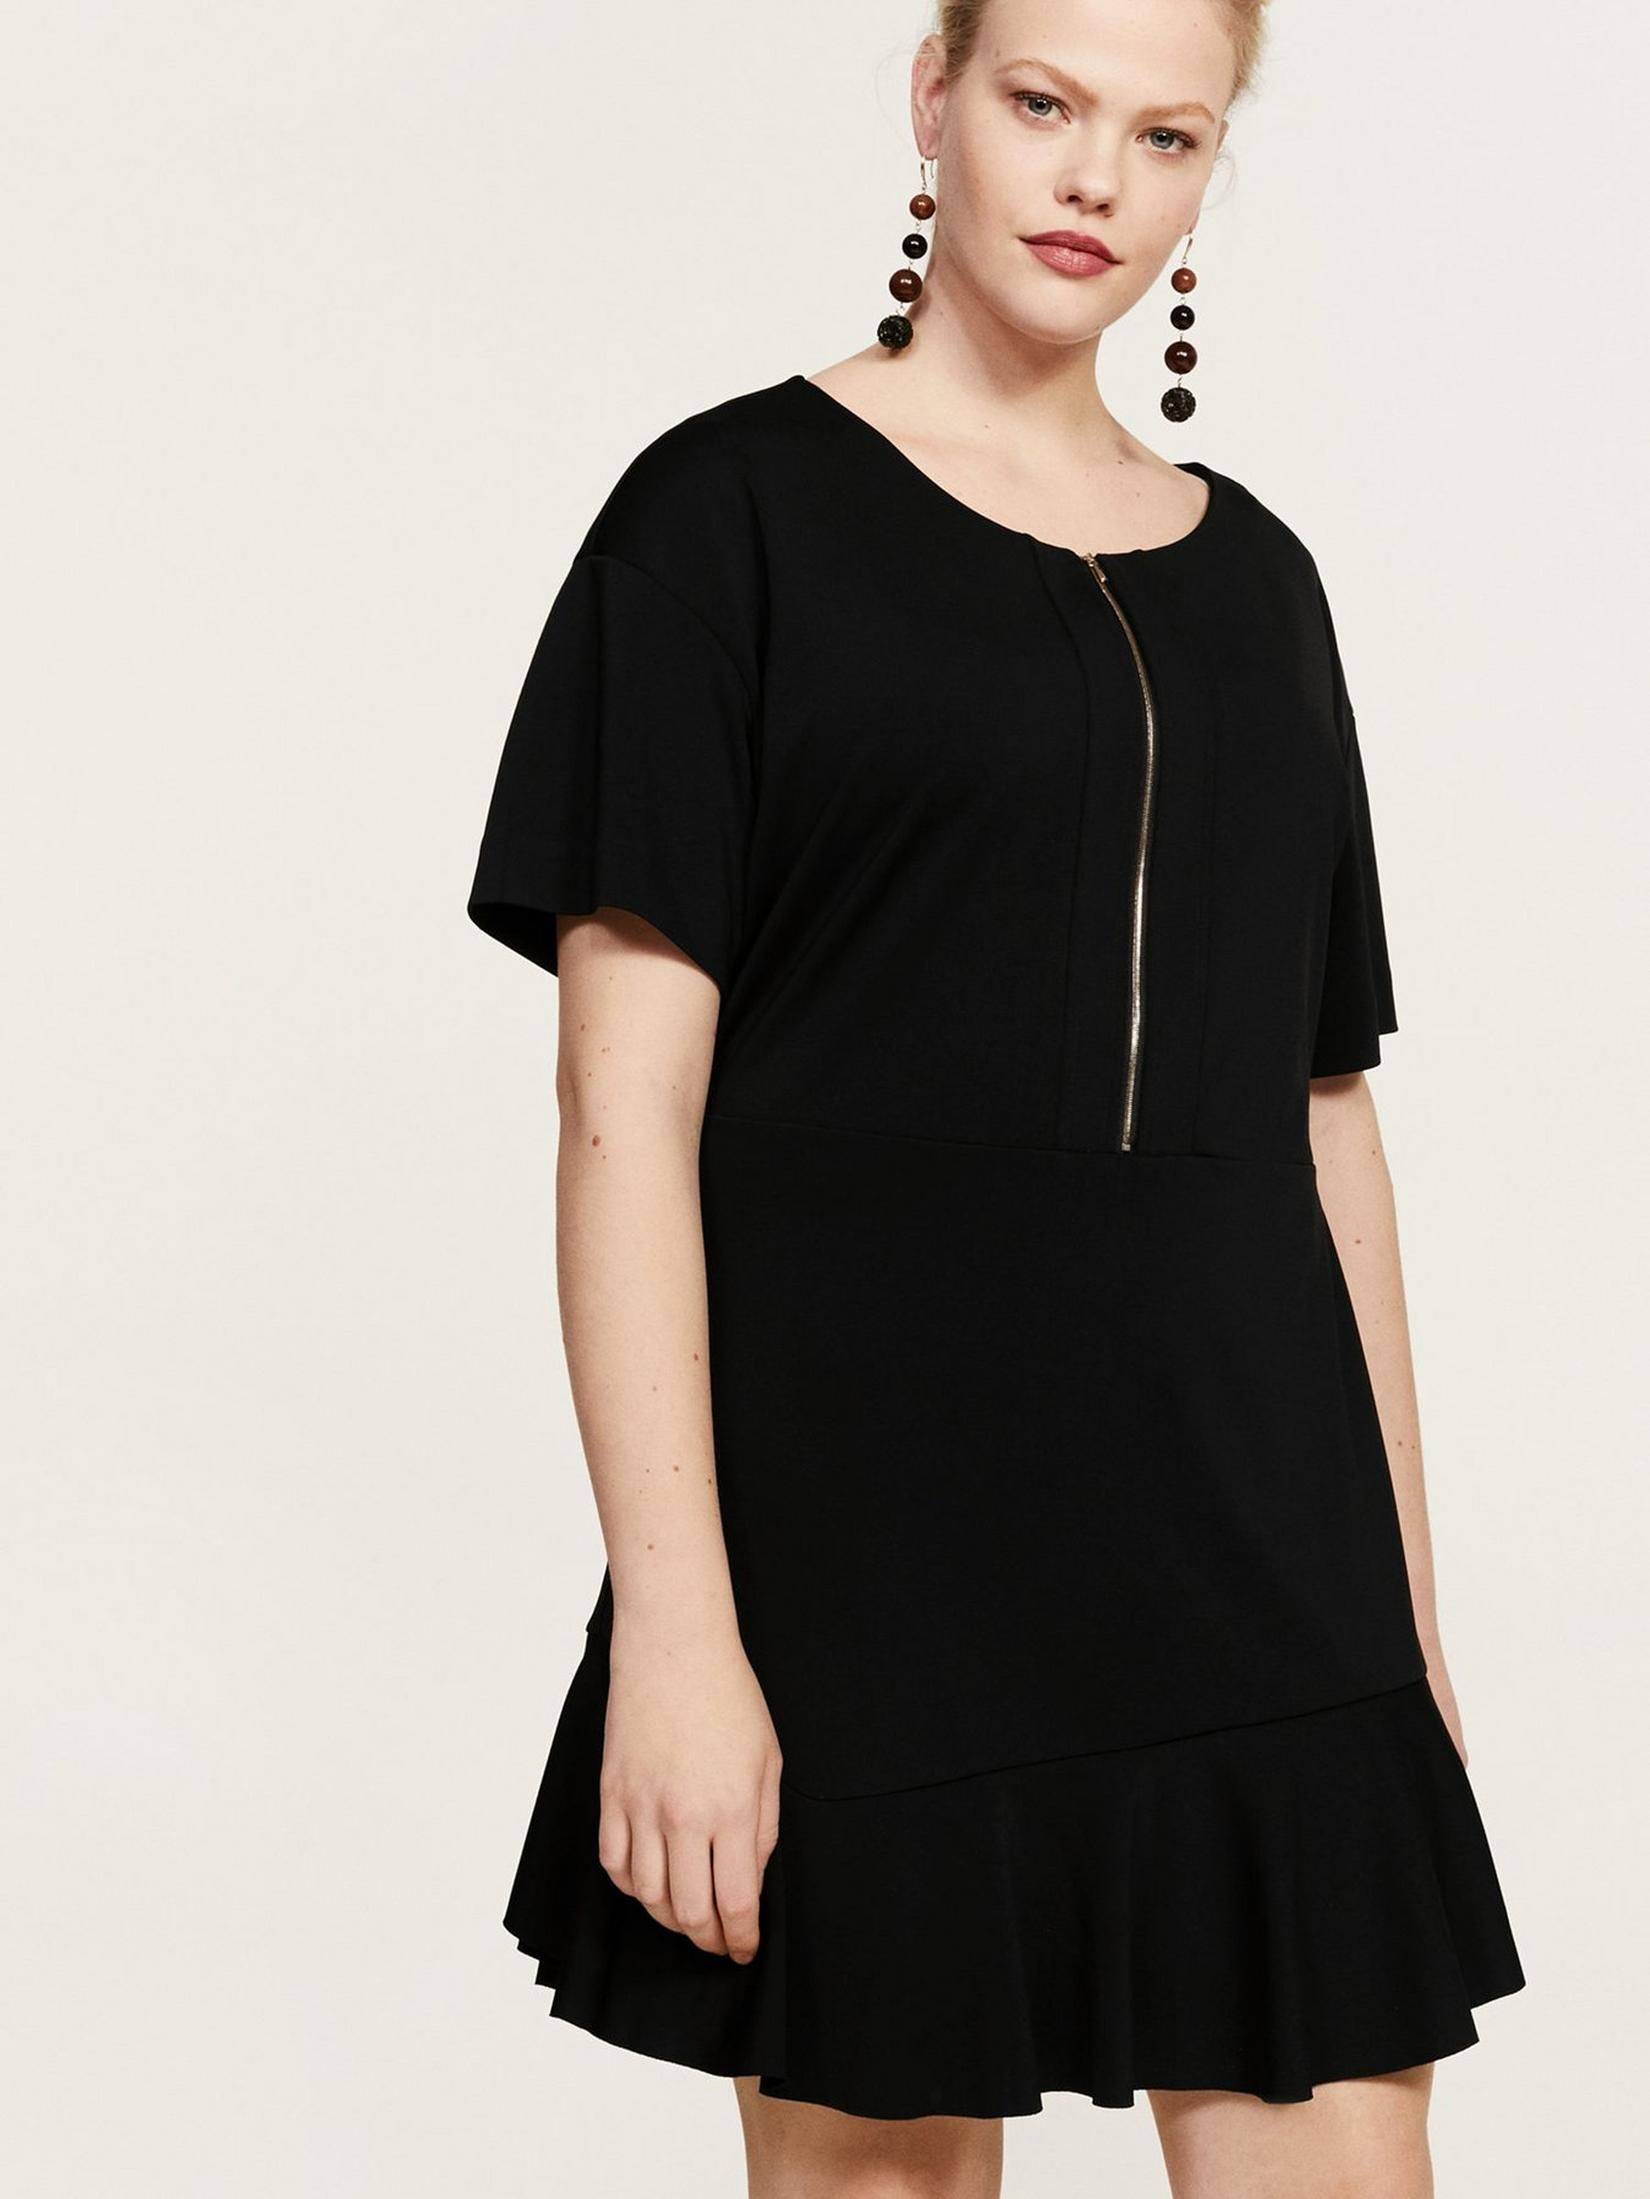 Violeta Plus Size Zip Front Dress - Black